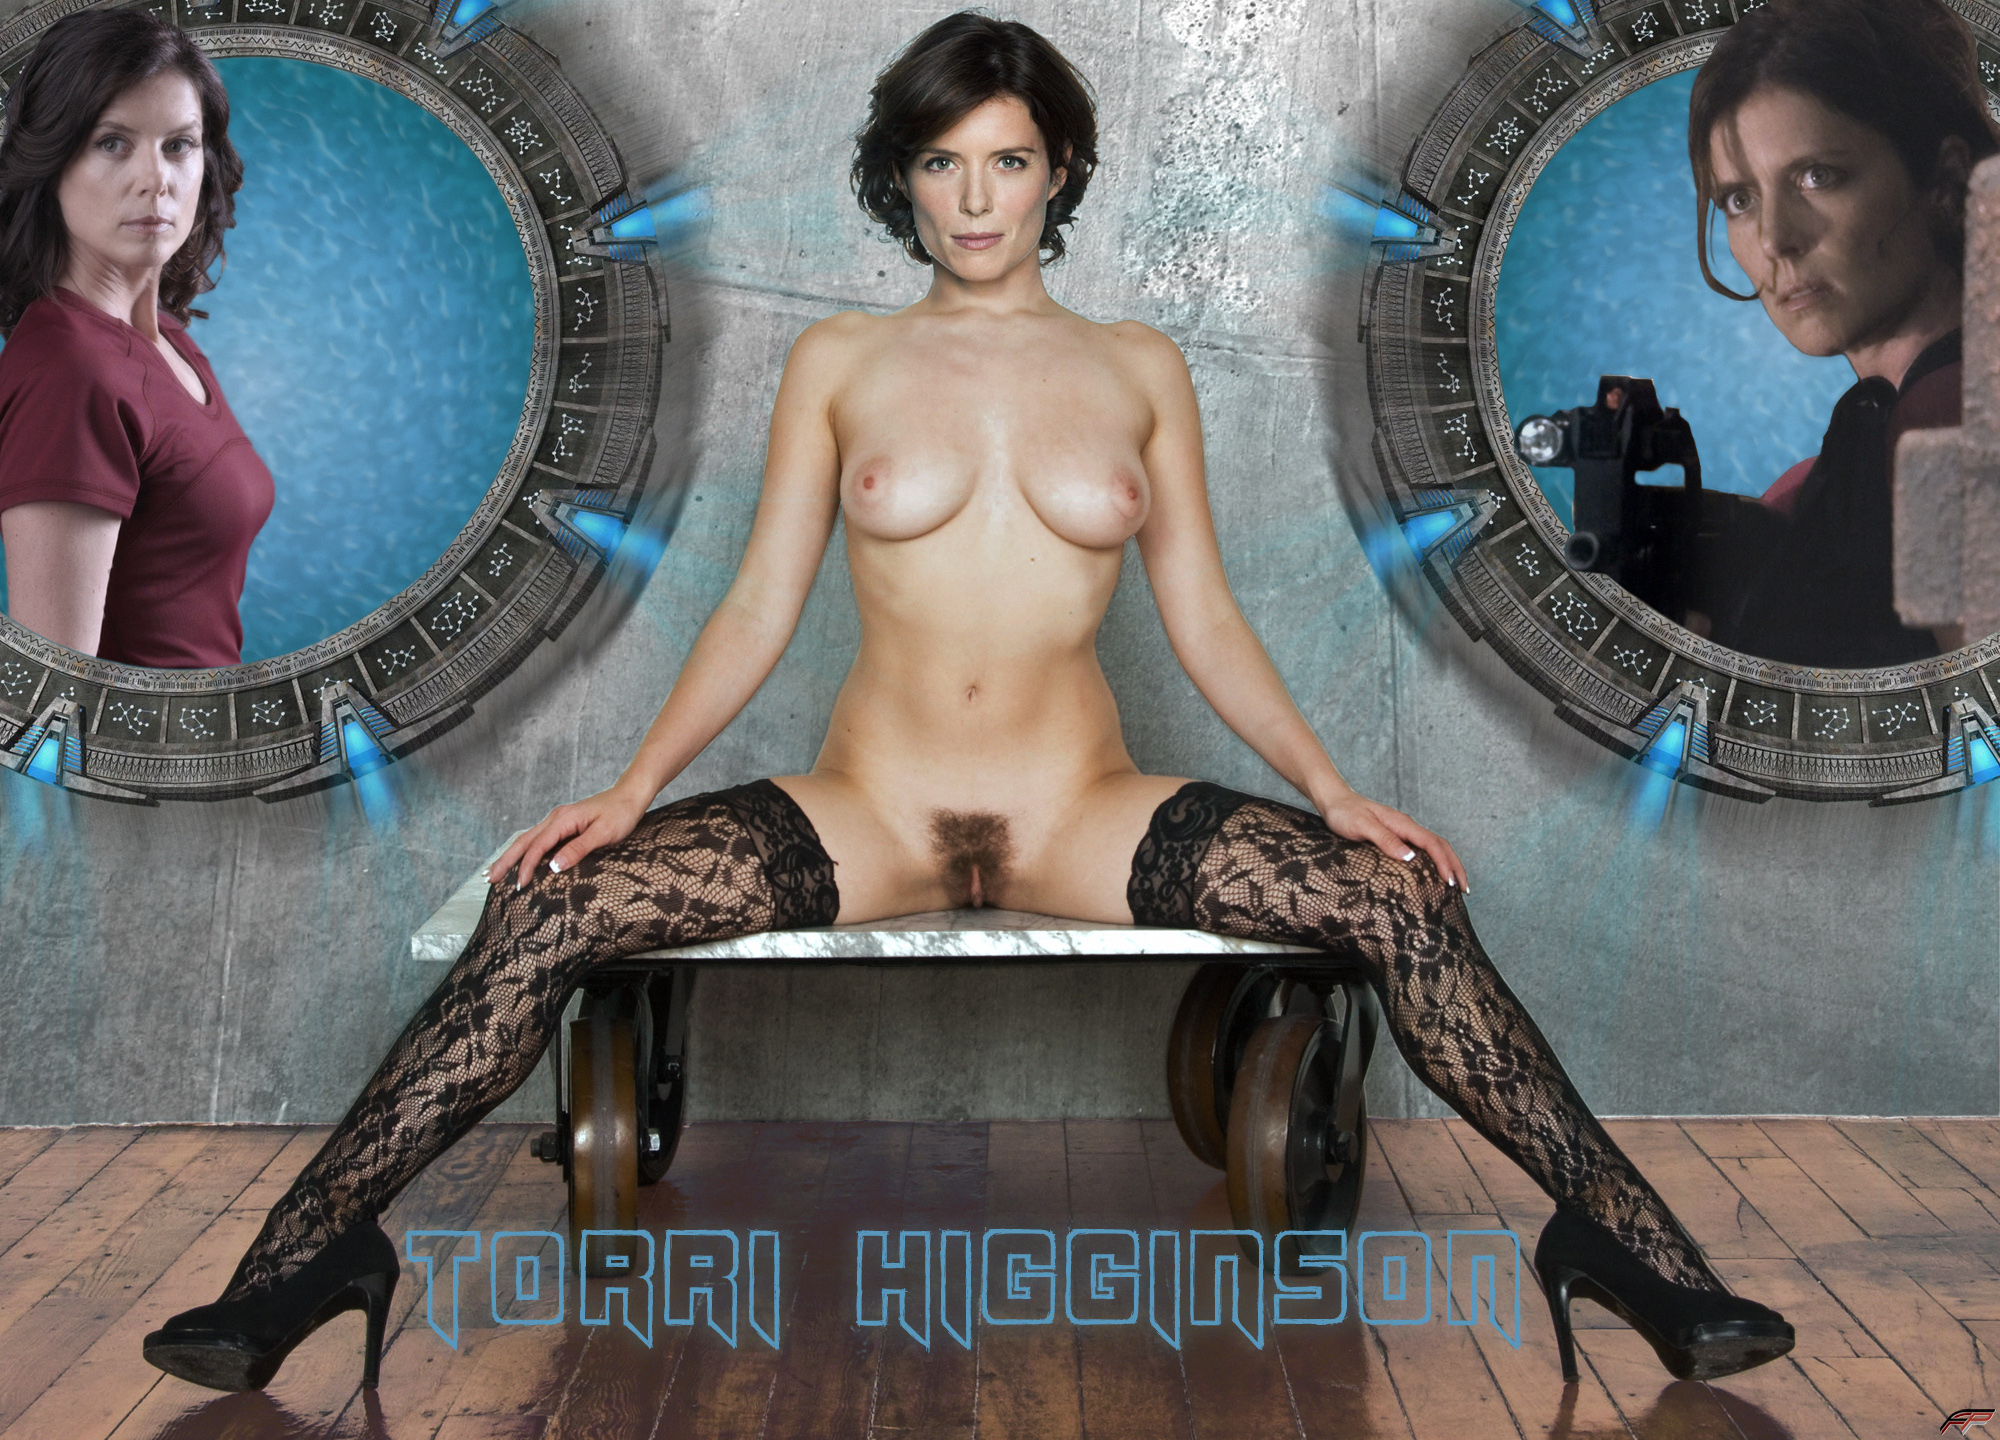 Naked pictures of torri higginson — 12